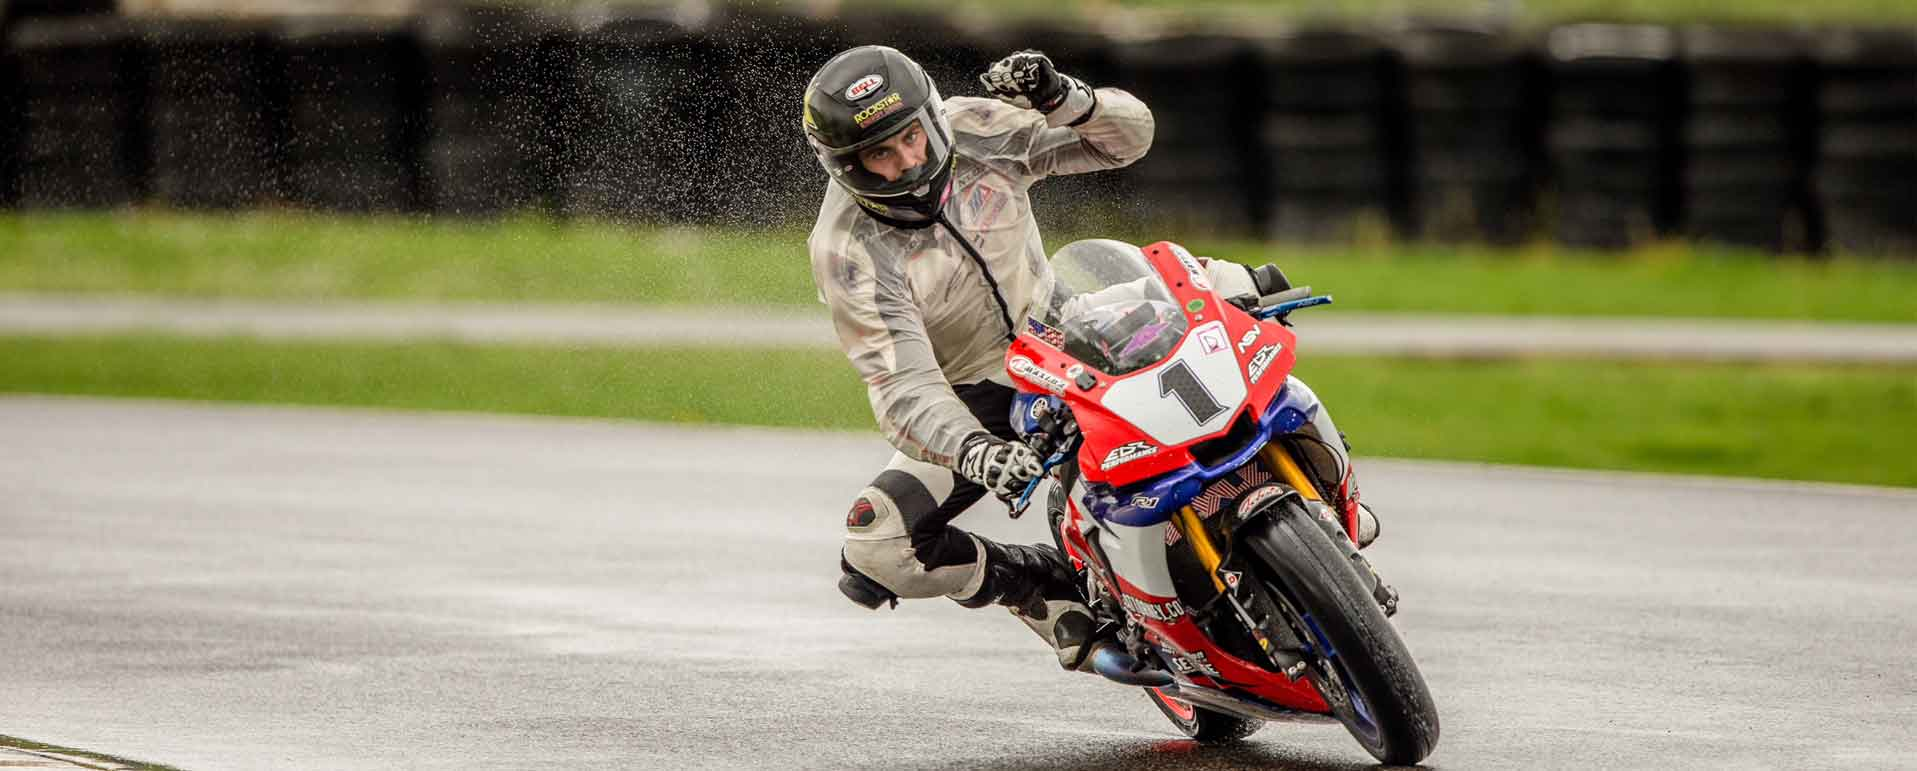 Andy after a win in wet contditions racing his R1 1000cc motorcycle at Portland International Raceway OMRRA round 1 series